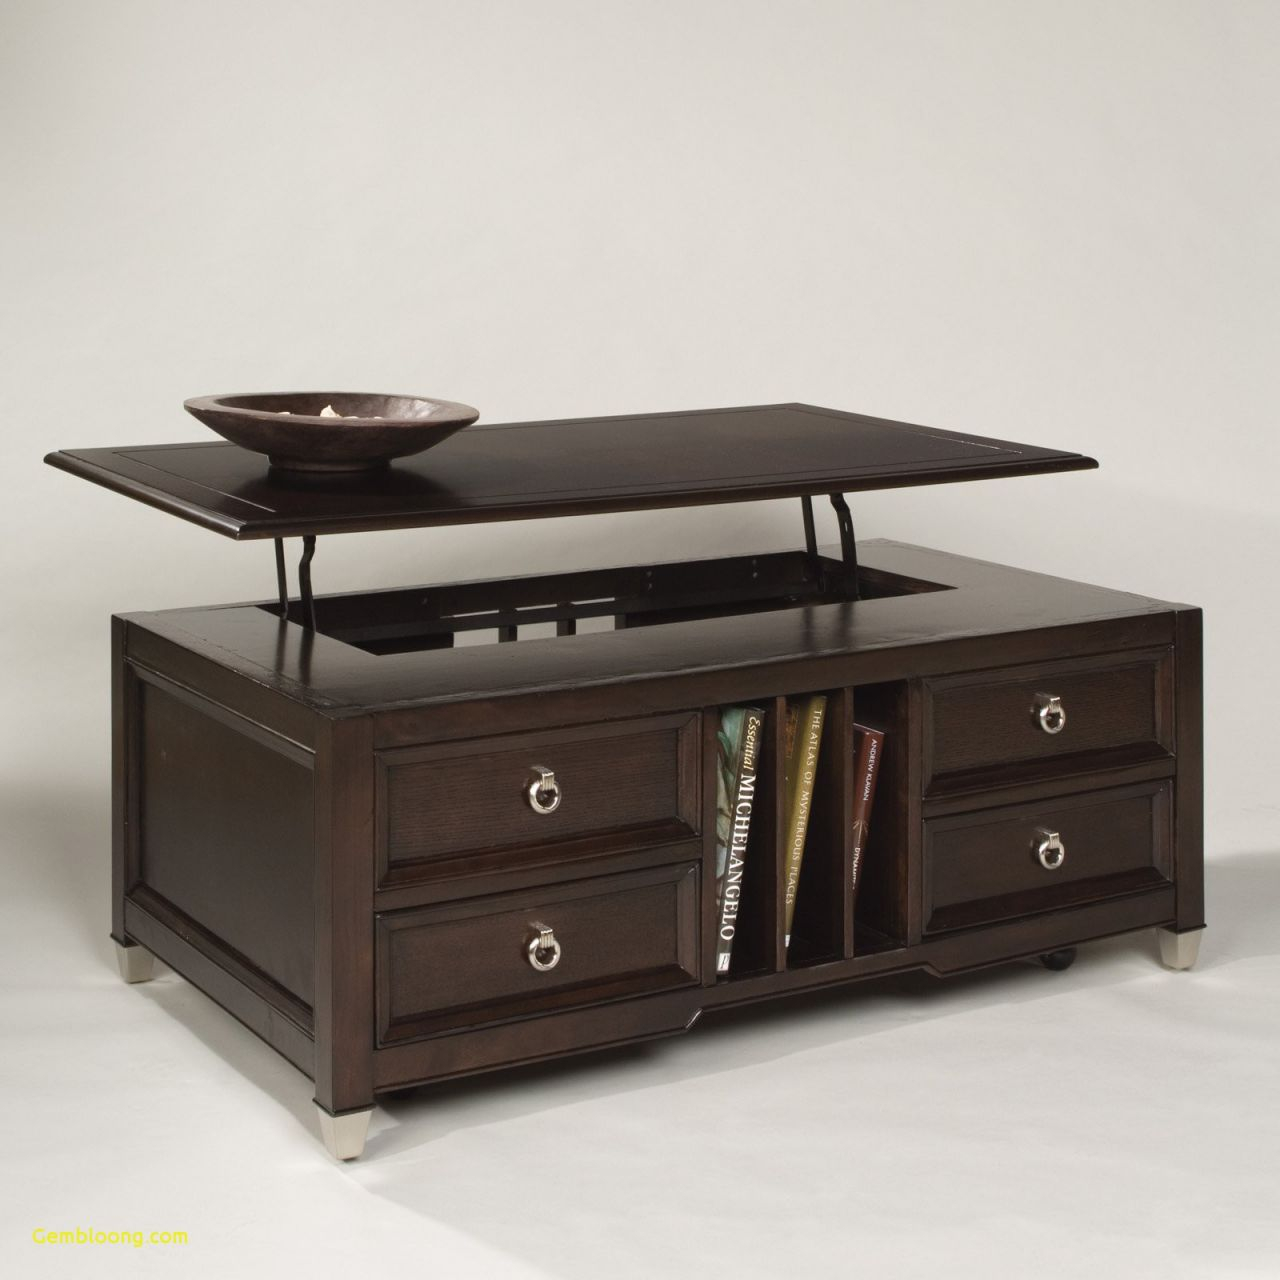 Coffee Table Design Ideas - Page 31 Of 31 - intended for Square Coffee Table With Storage